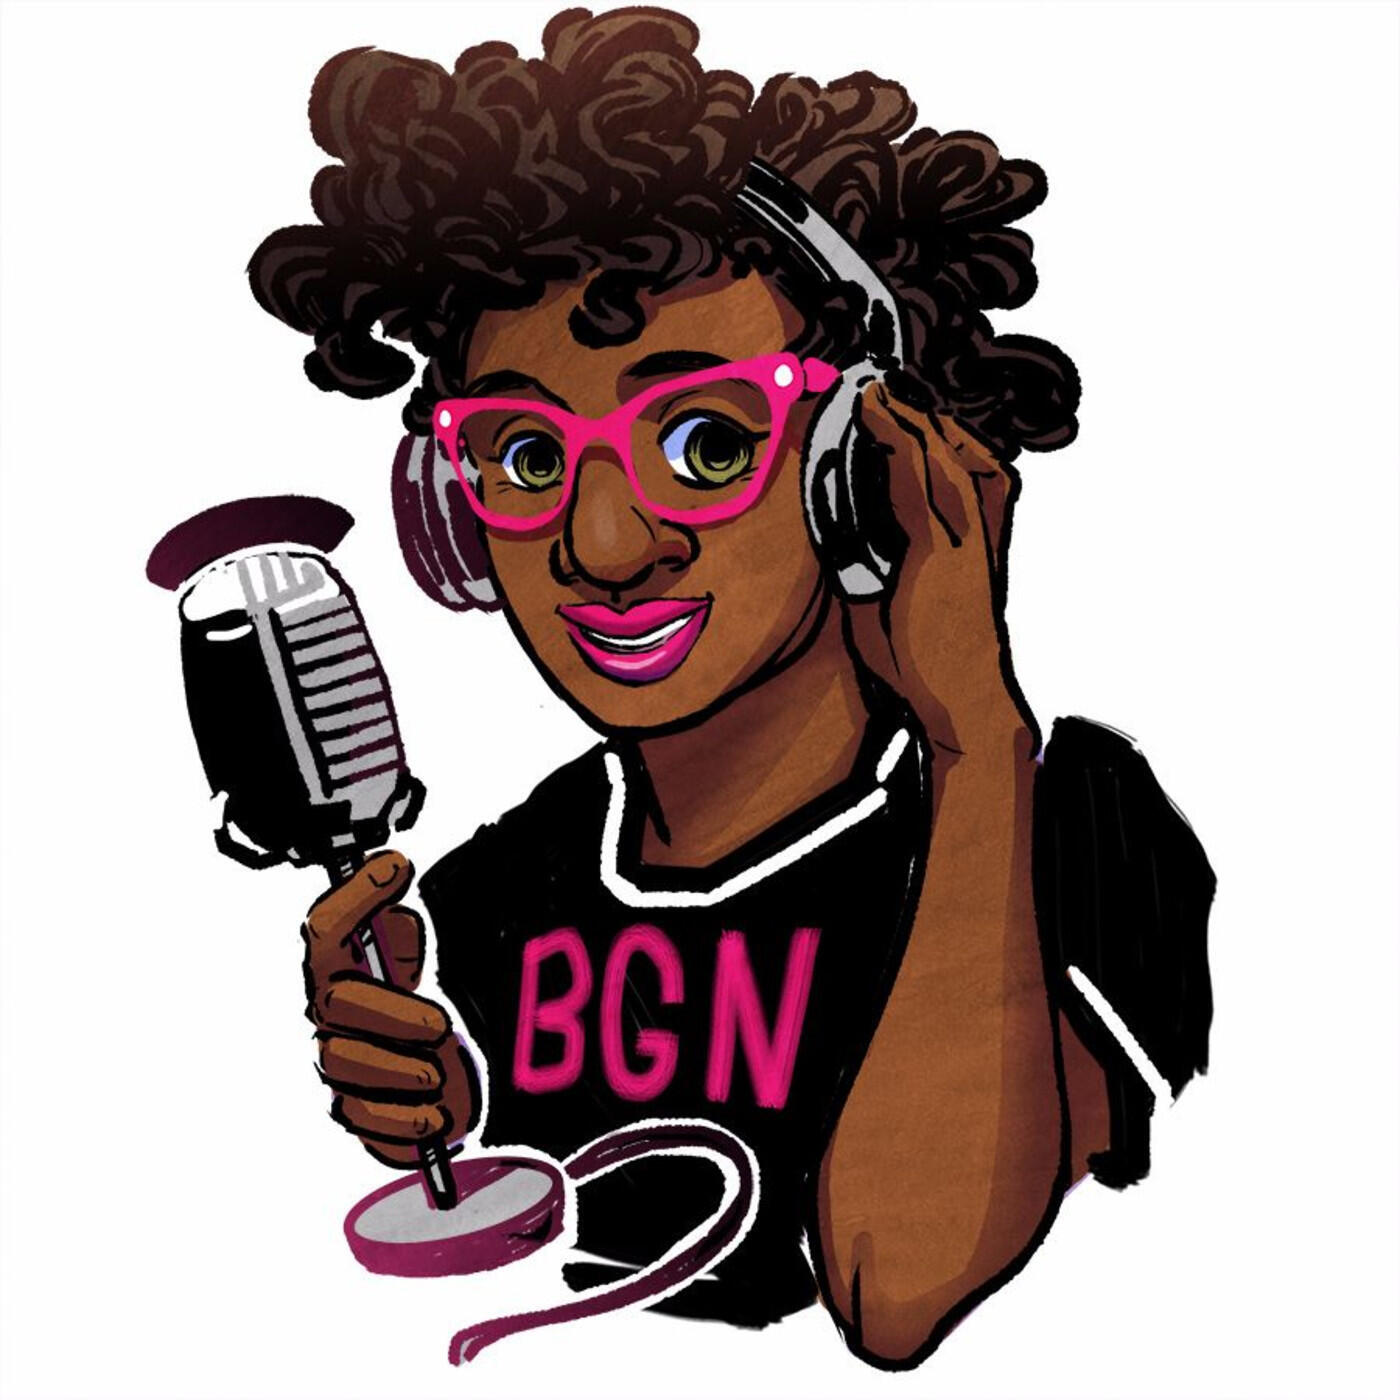 Podcast Episode: #BGNPodcast Extra - Blerd Moms